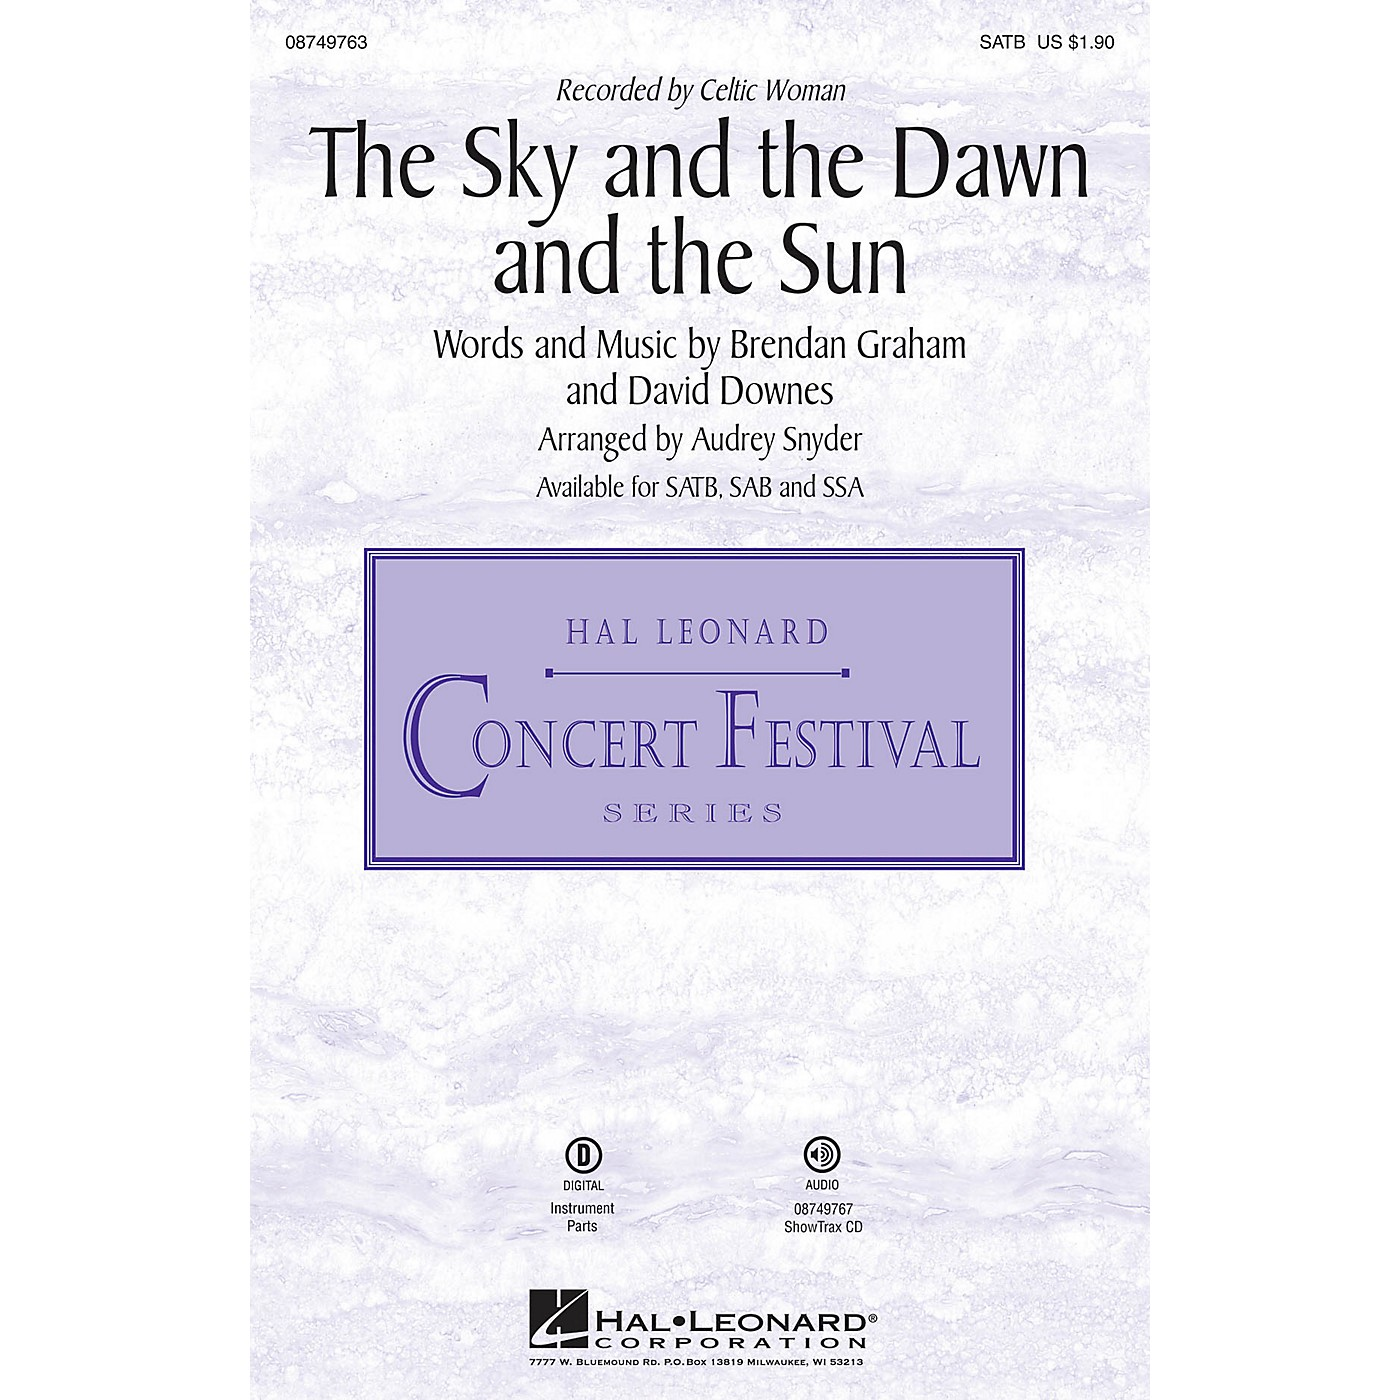 Hal Leonard The Sky and the Dawn and the Sun SATB by Celtic Woman arranged by Audrey Snyder thumbnail